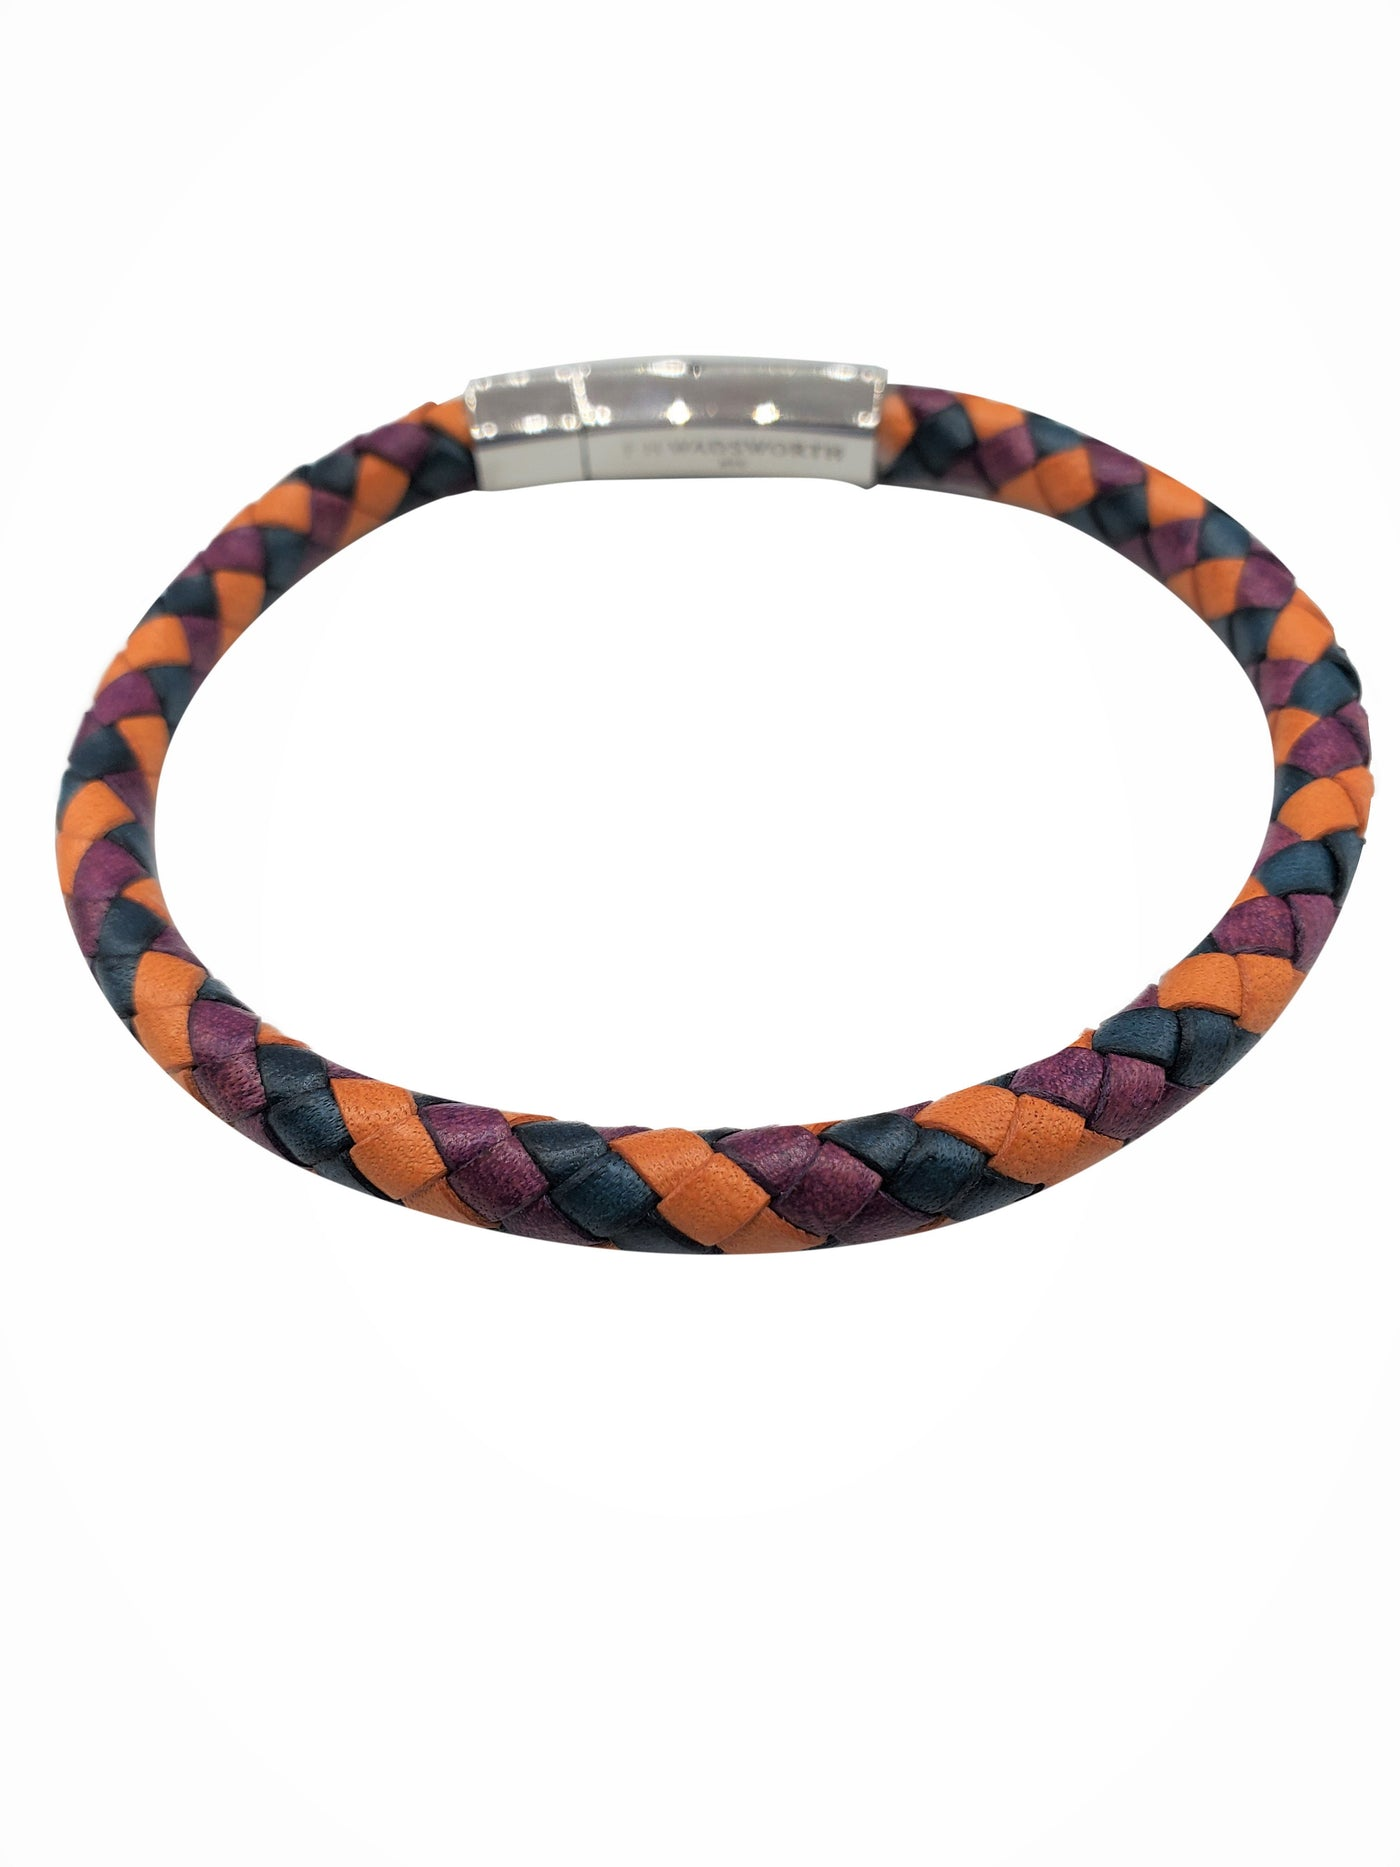 Multicolored Blue Orange Purple Braided Leather Bracelet